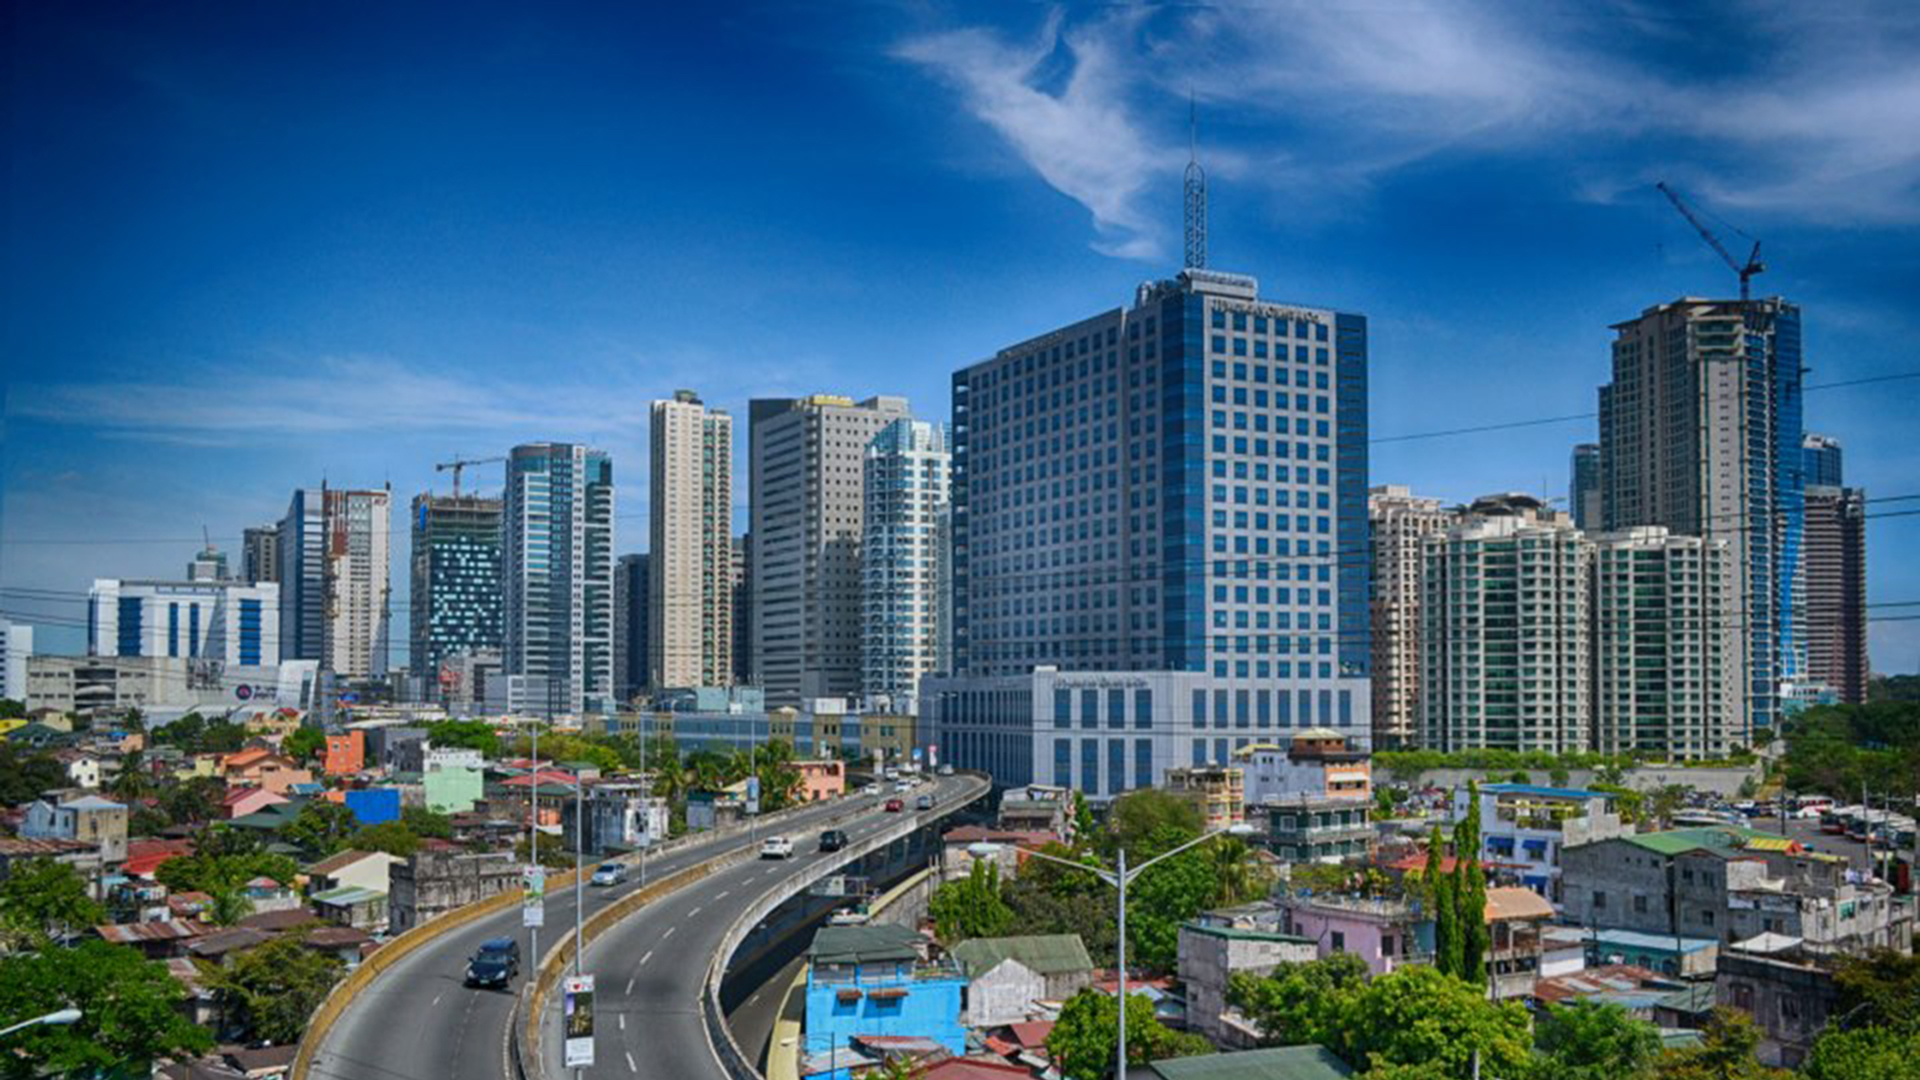 Philippines Travel Site Top 10 Largest Cities in the Philippines